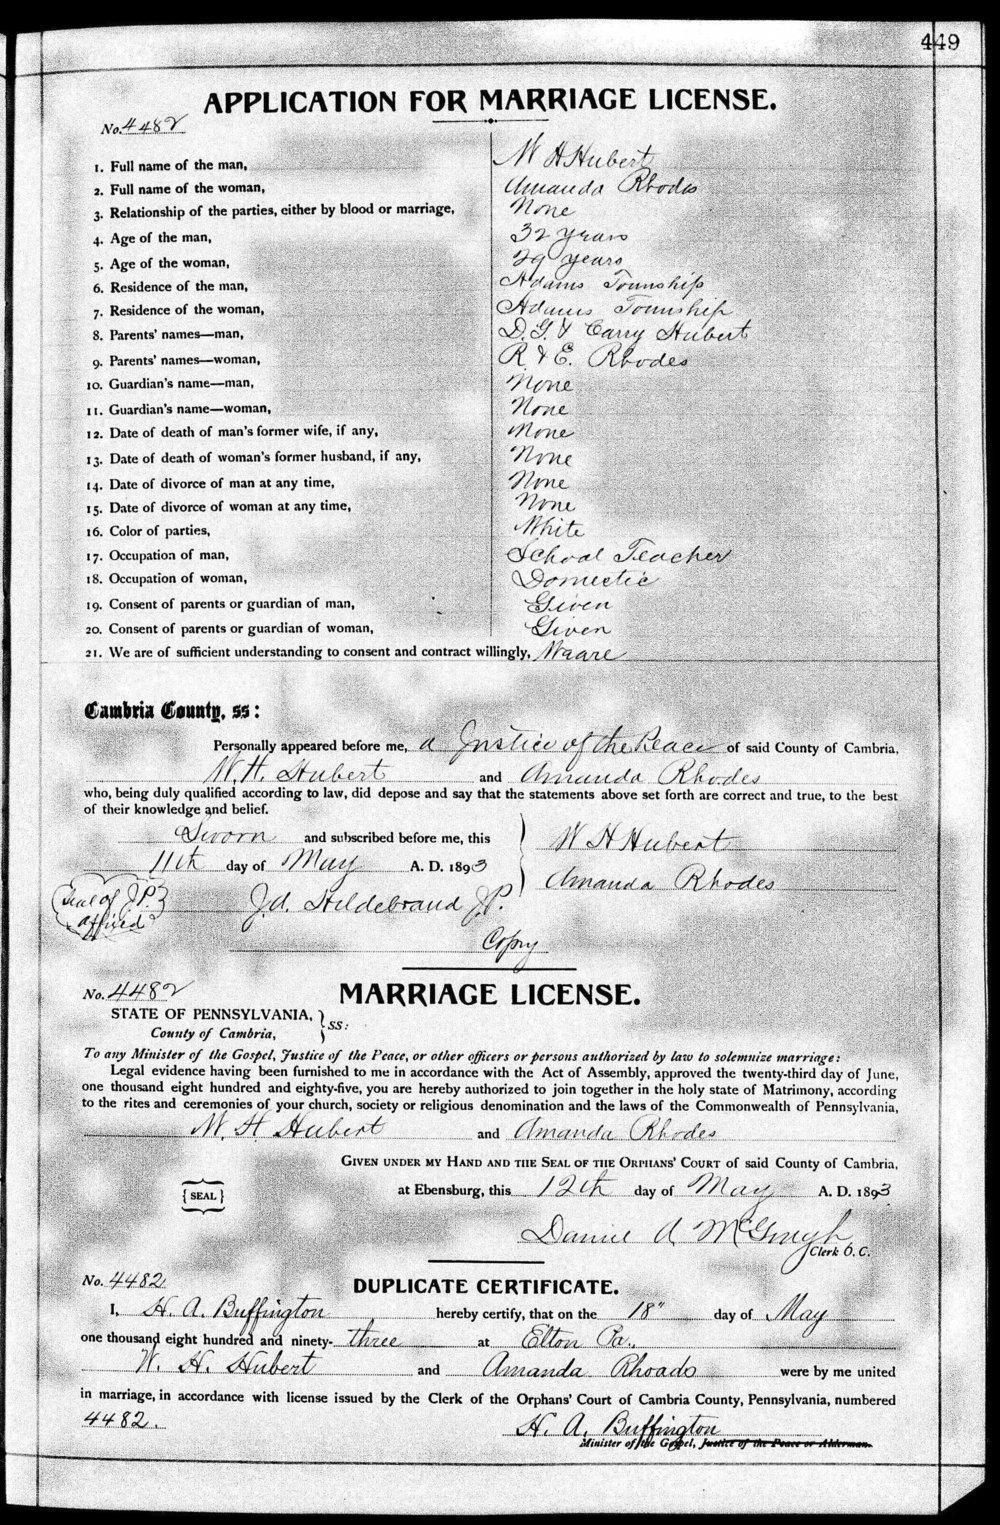 Marriage license for William and Amanda (Rhoads) Hubert